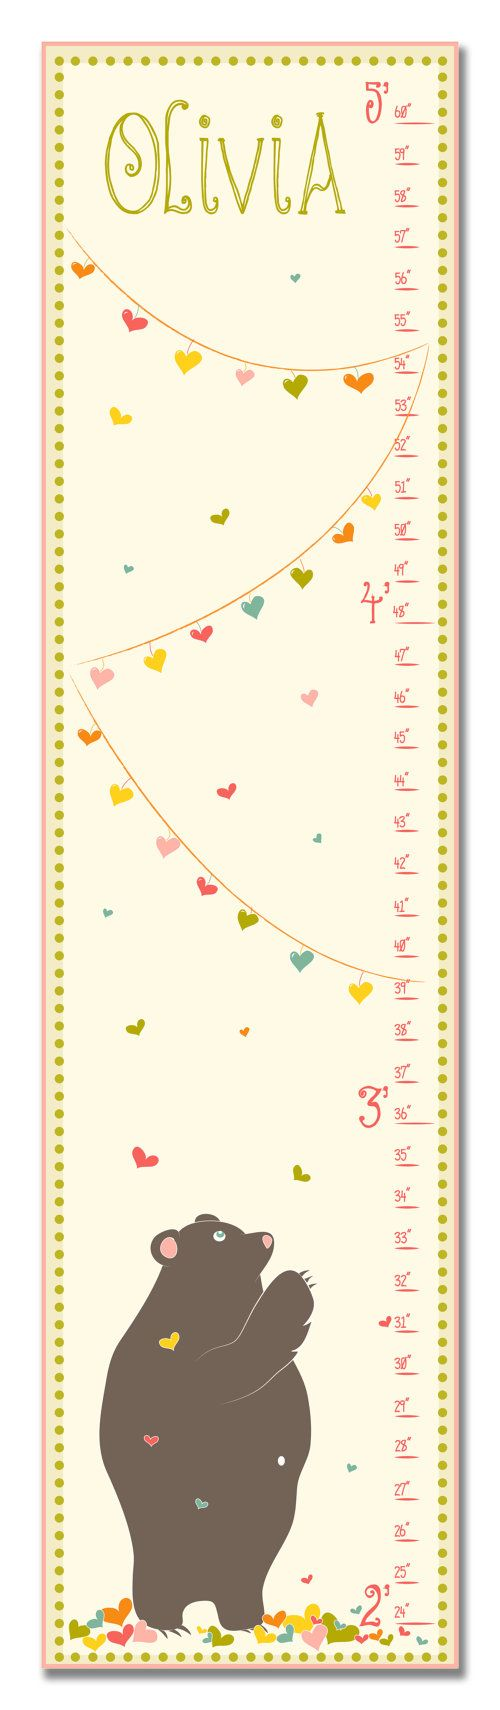 17 best childrens growth charts images on pinterest bricolage childrens growth chart nursery art love bear pink by kzukowski geenschuldenfo Choice Image